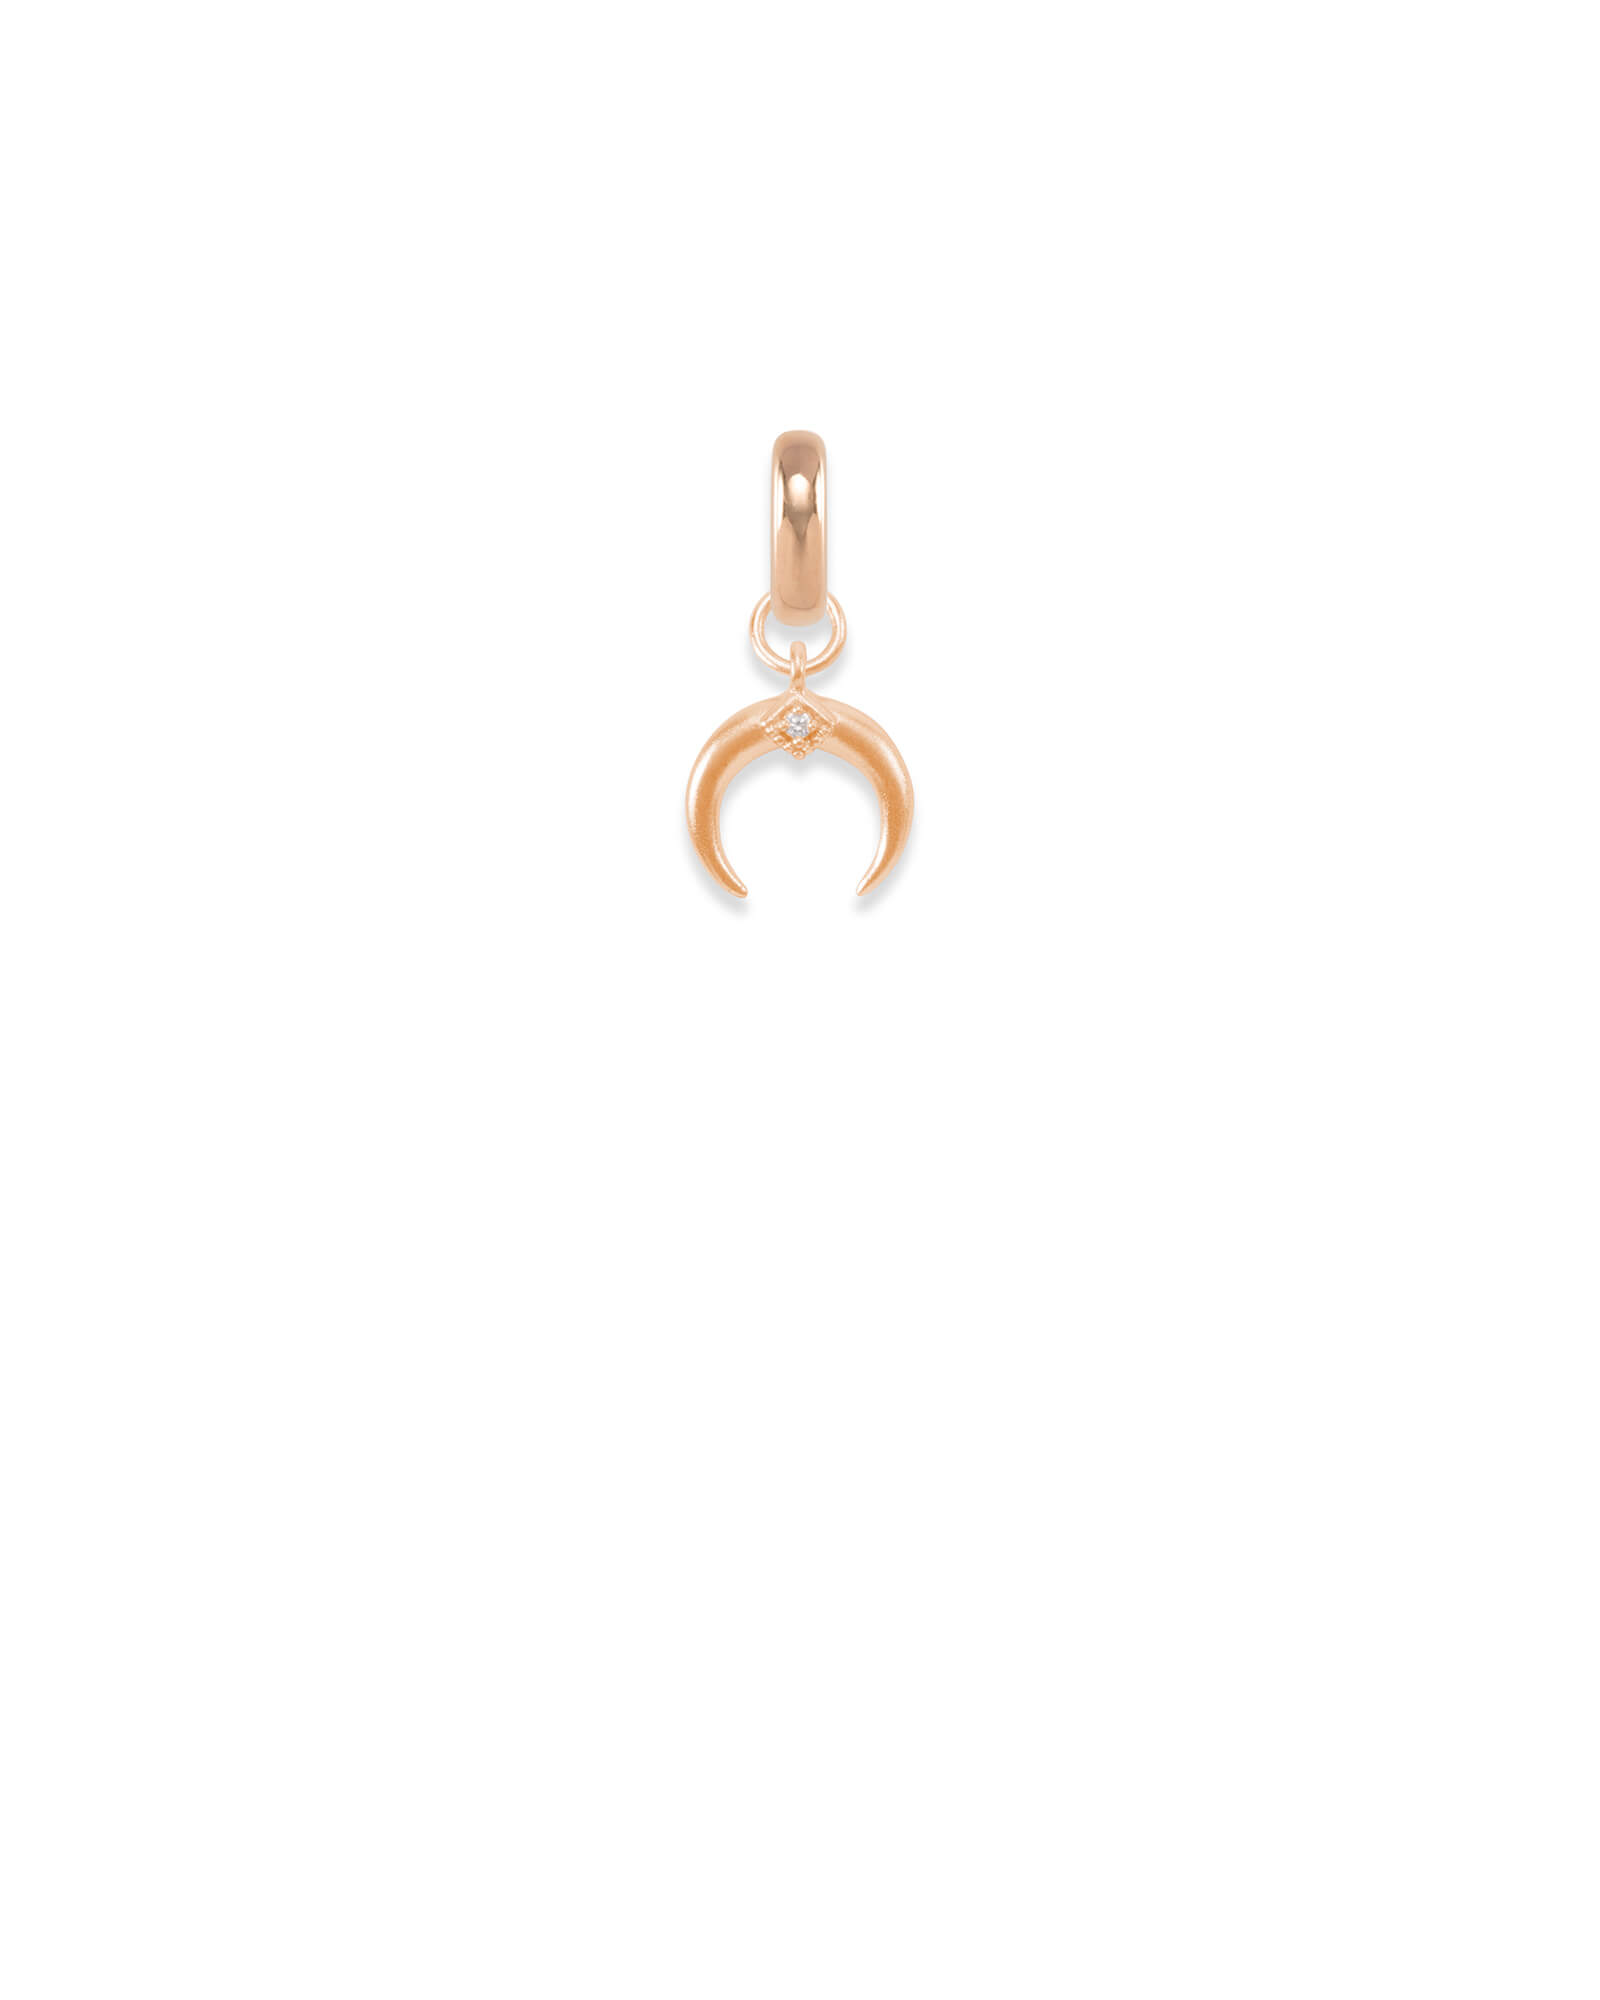 Oklahoma Bison Horns Charm in Rose Gold